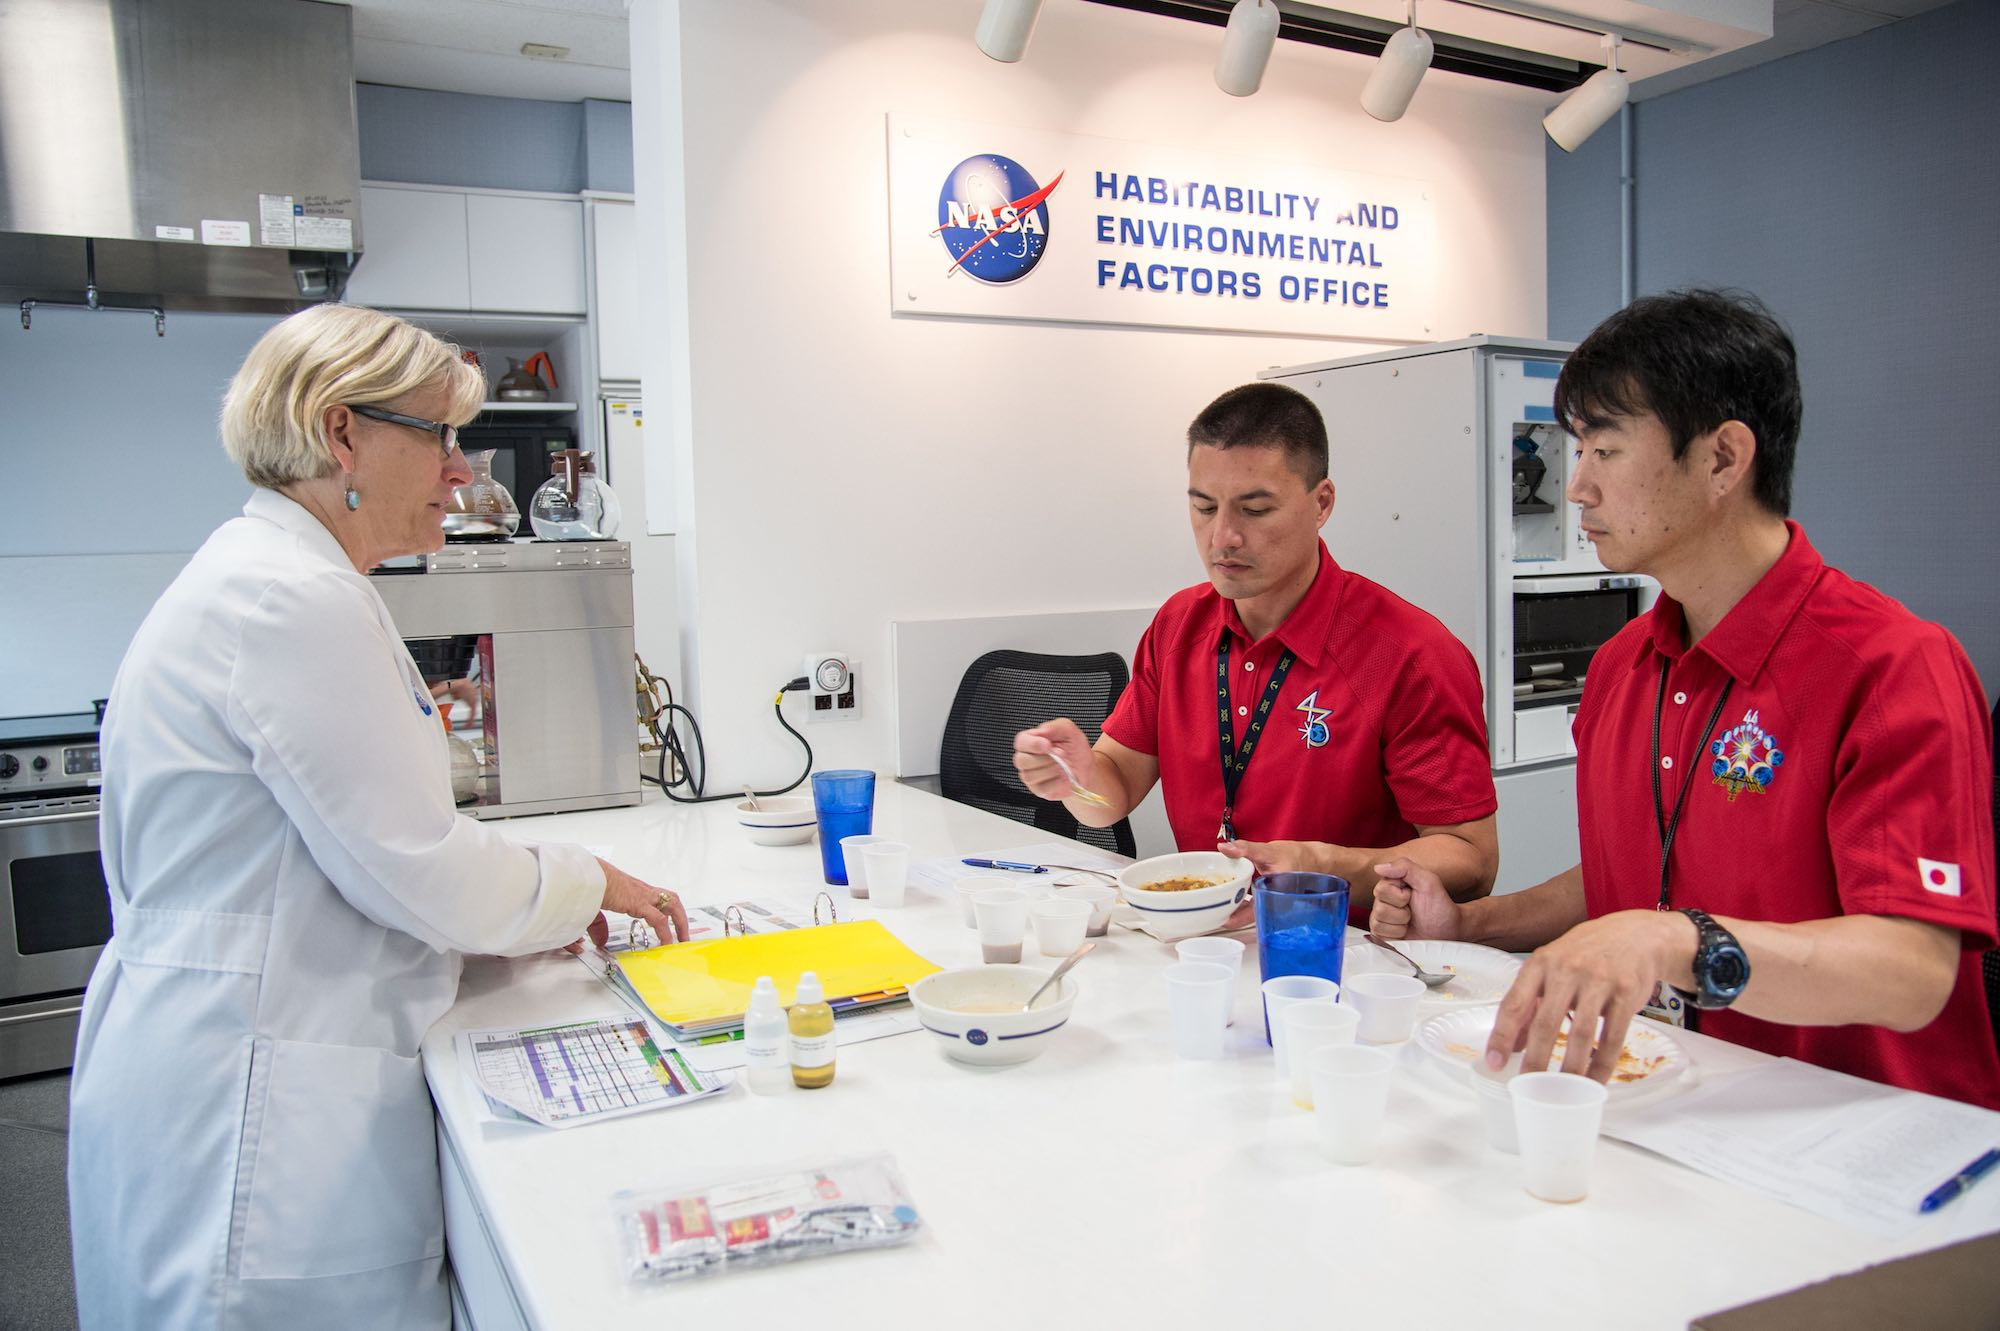 At NASA's Johnson Space Center in Houston, 2 astronauts (the American Kjell Lindgren and the Japanese Kimiya Yui) taste the different meals proposed by the nutritionists. They grade them so that their diet takes account of their preferences. Image credit: NASA